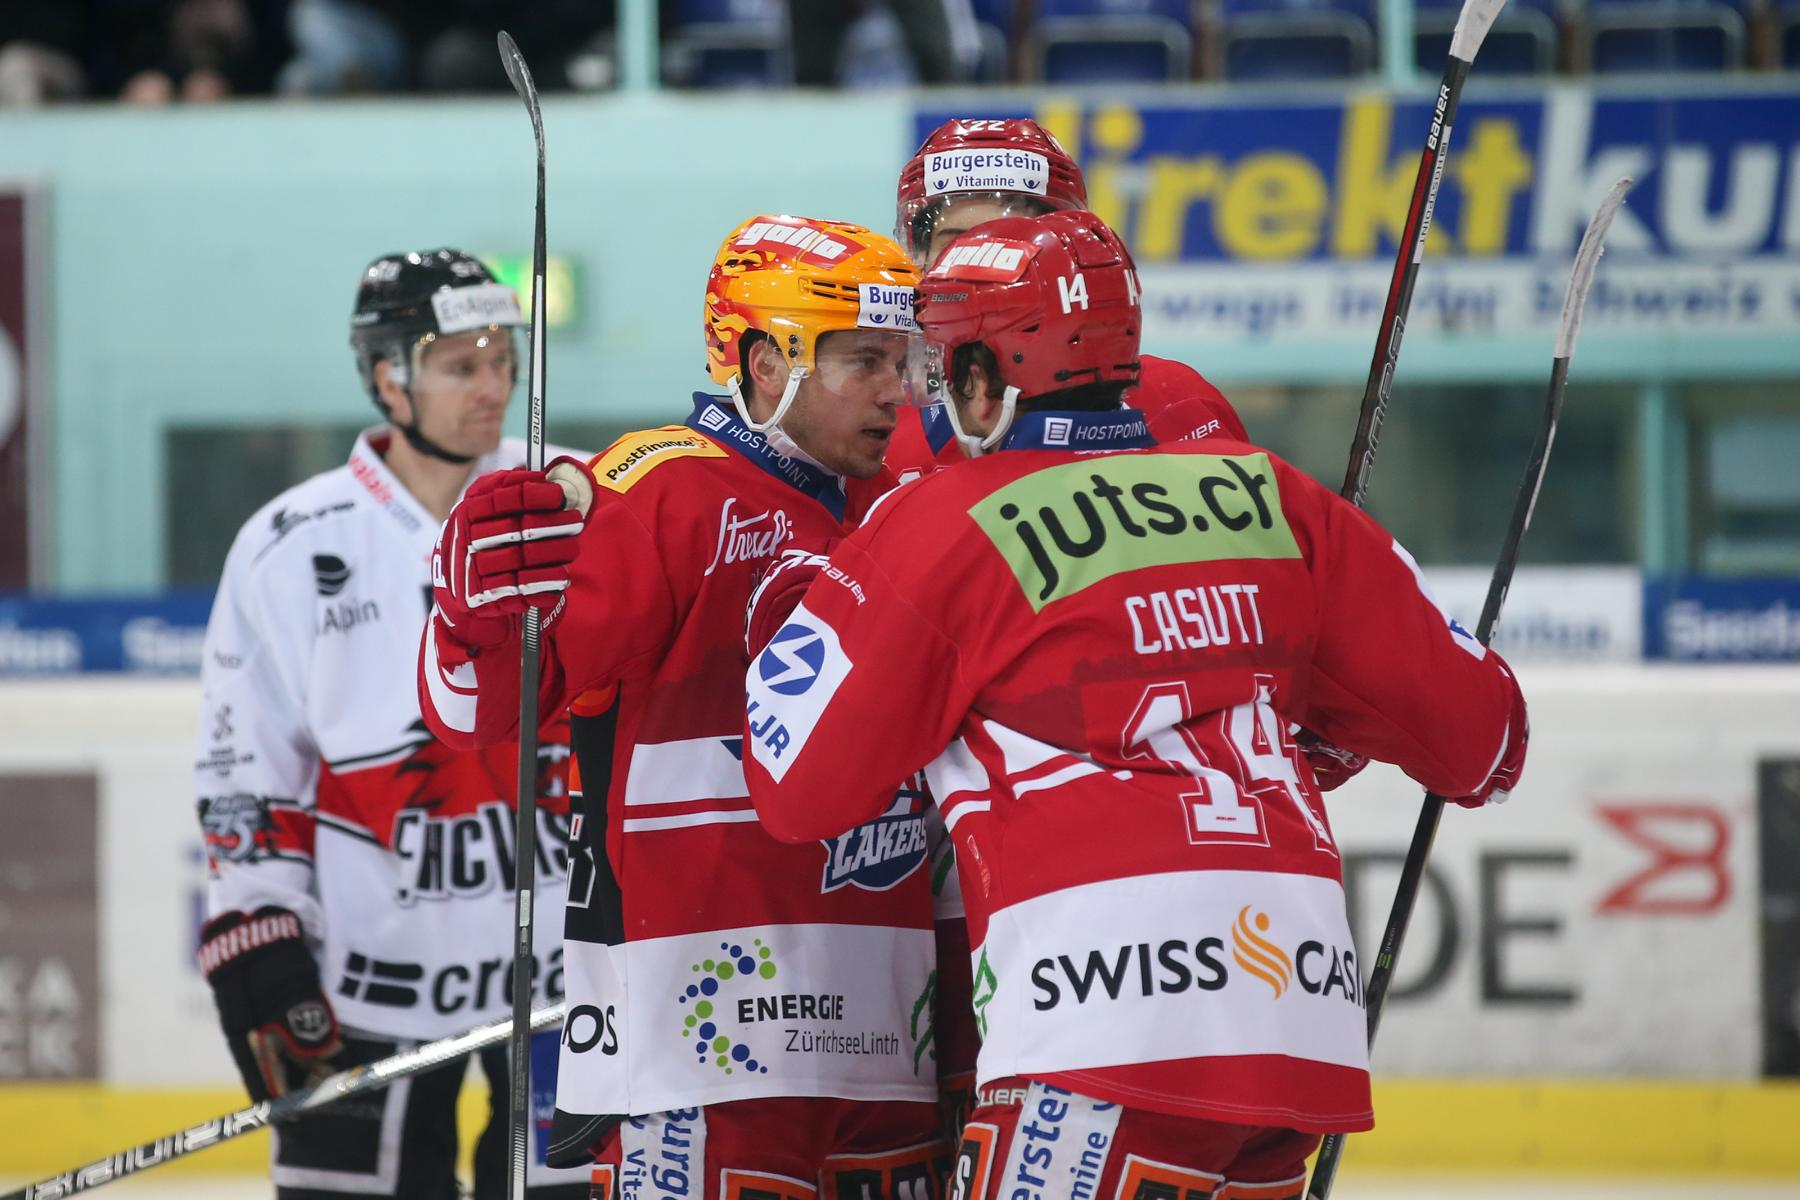 SCRJ Lakers - EHC Visp